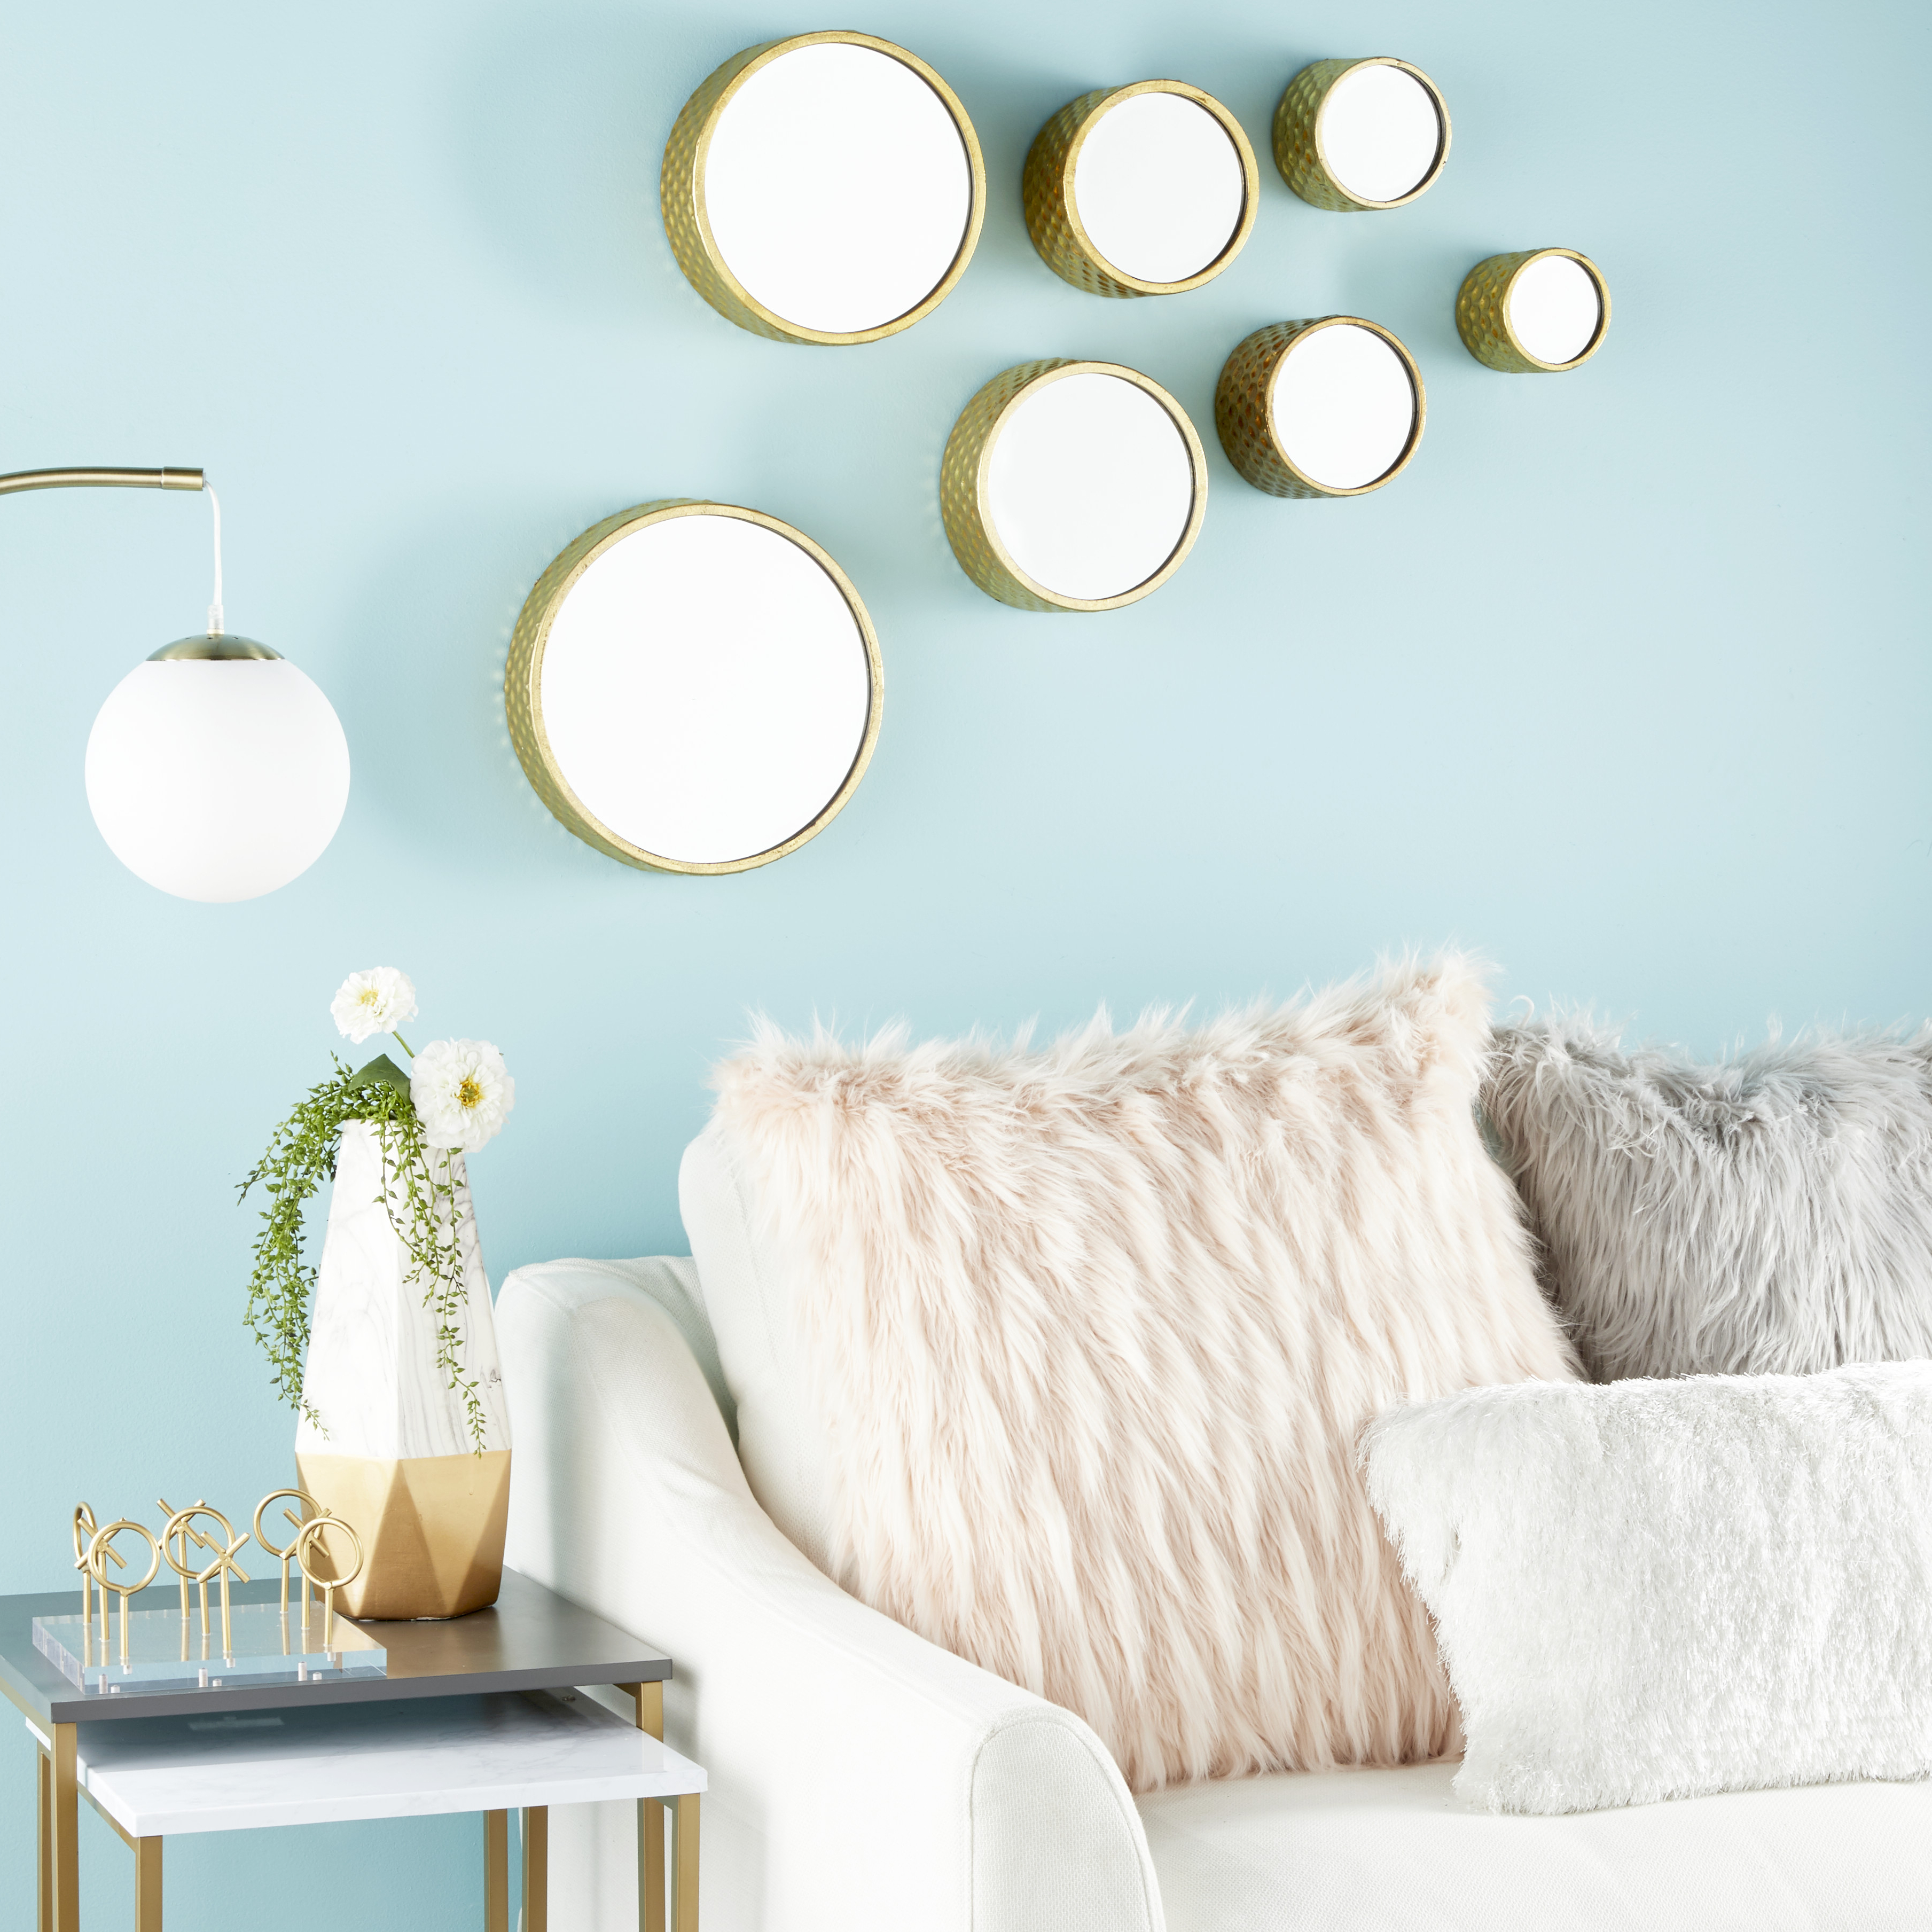 Cosmoliving Small, Round Metallic Gold Hammered Metal Decorative Wall  Mirrors (Gallery 16 of 20)